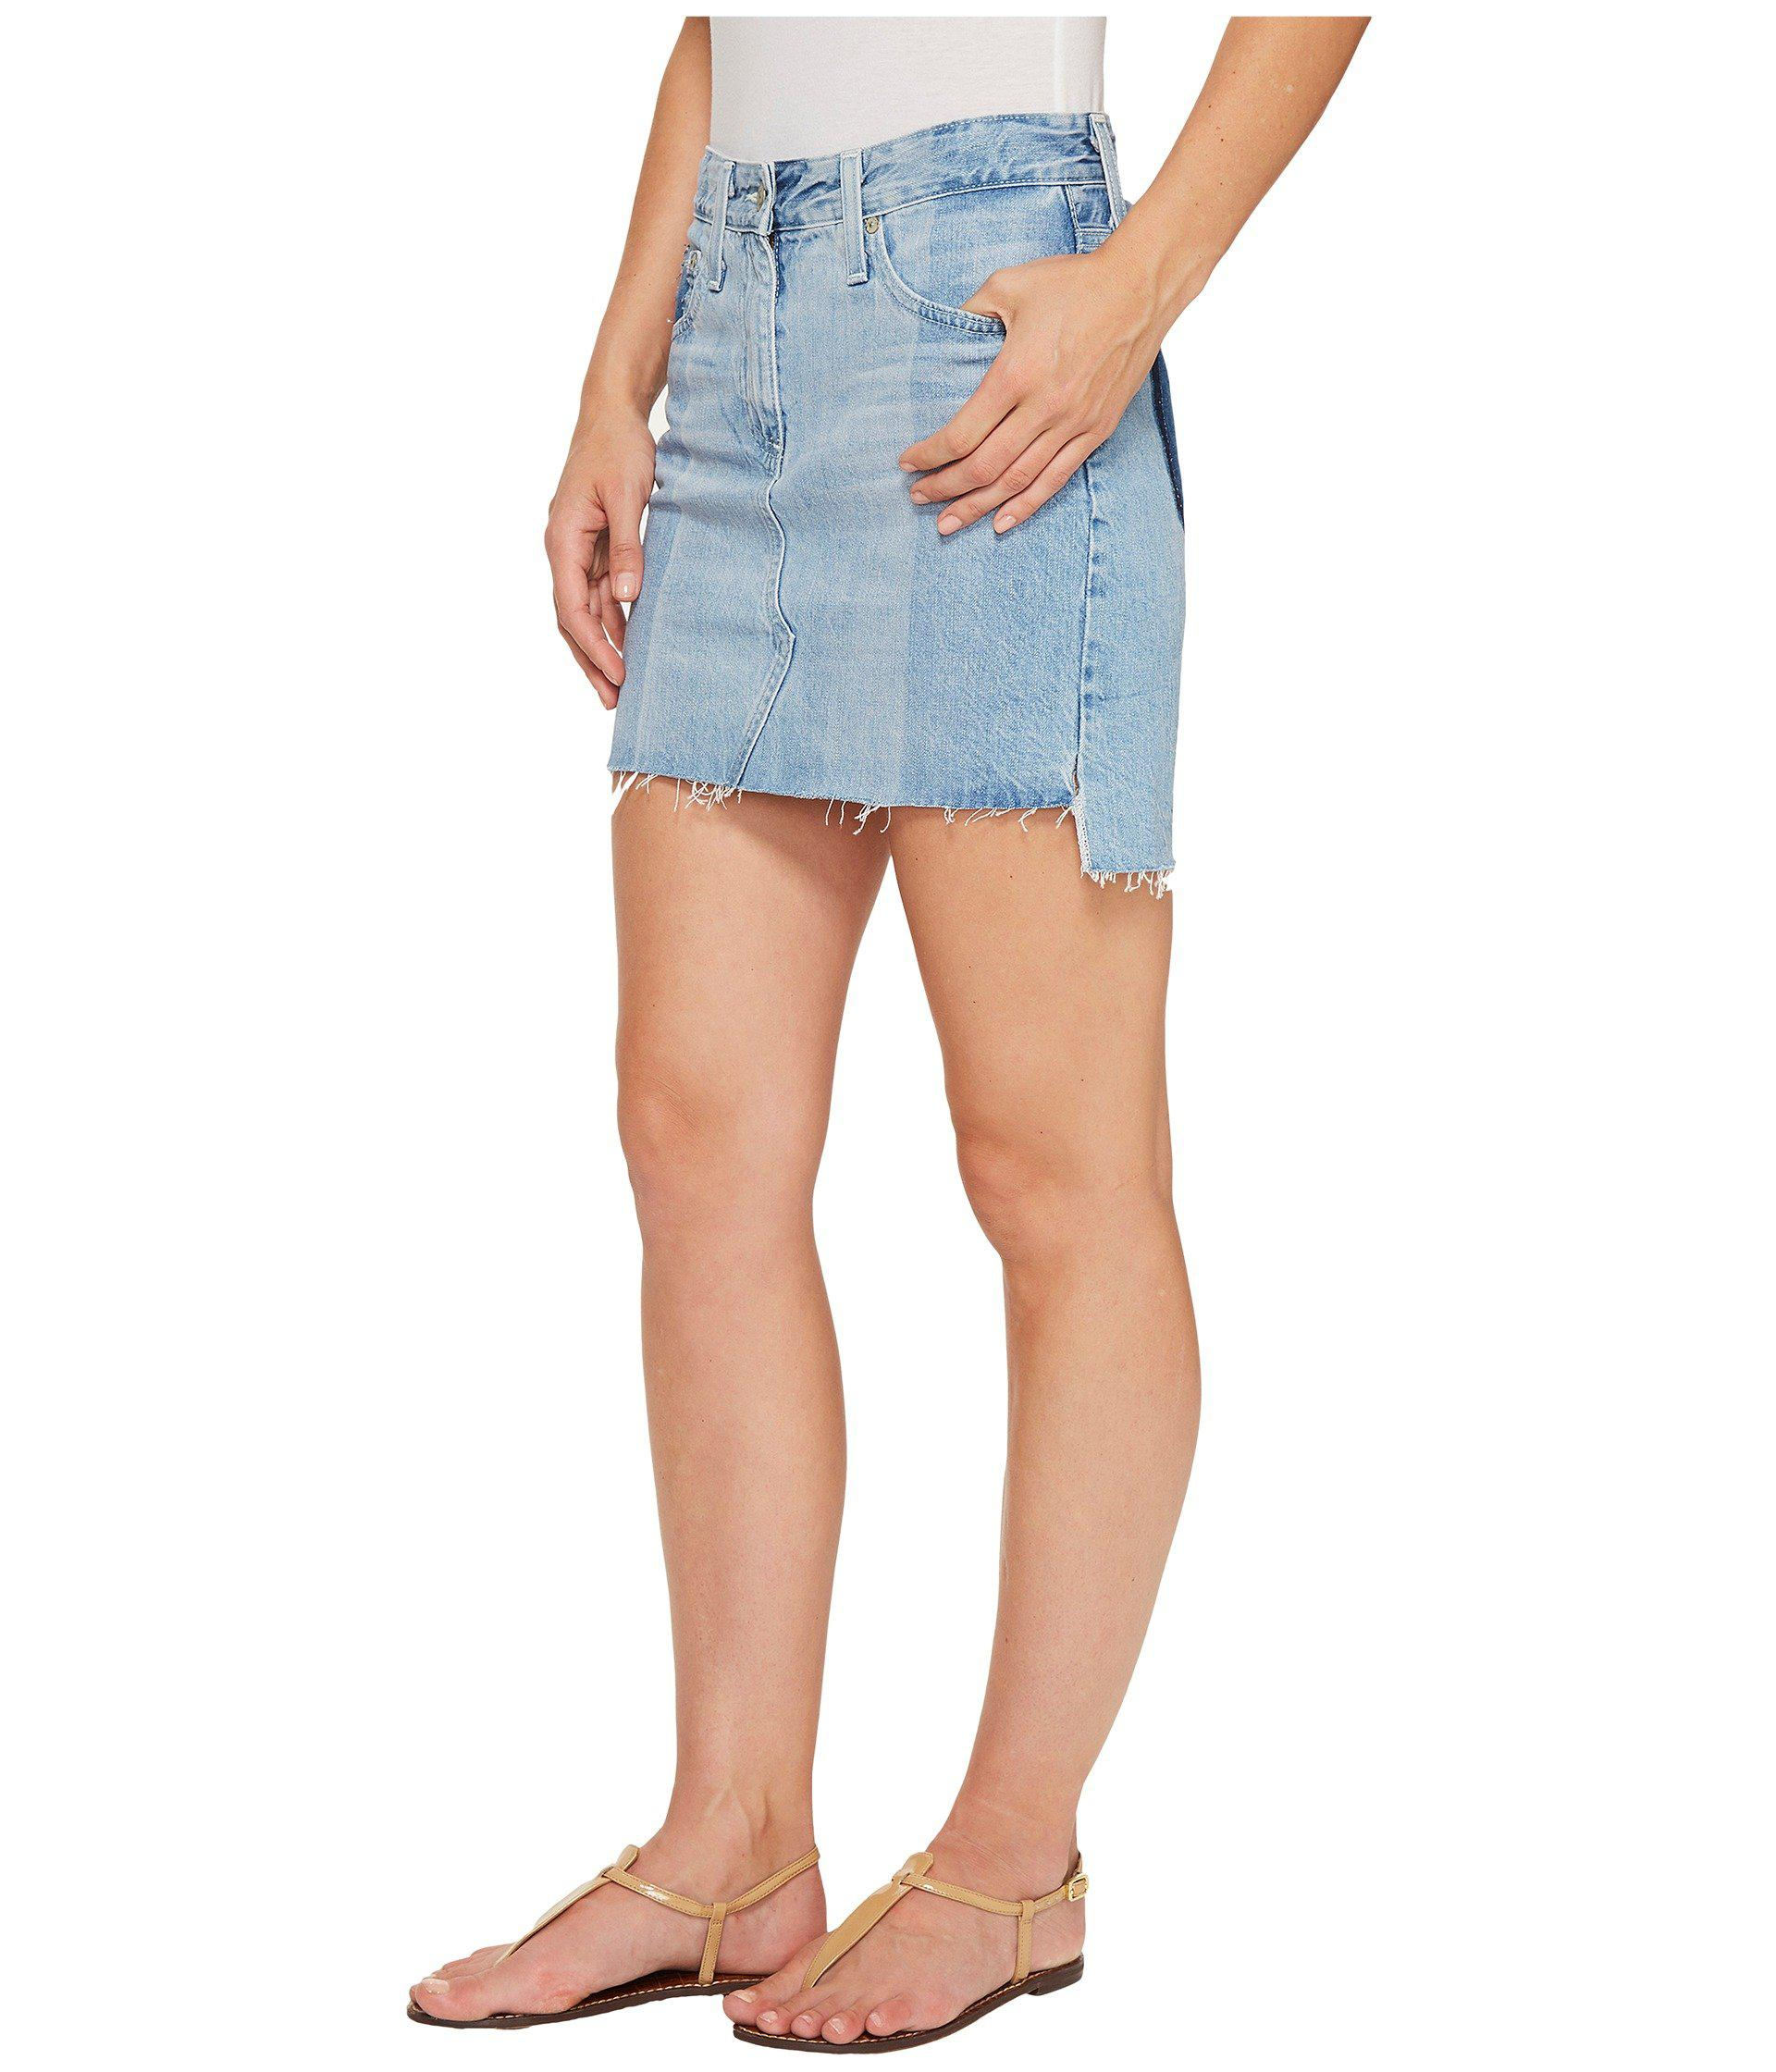 f4493af974f6 Lyst - AG Jeans Sandy Skirt In 19 Years Fracture in Blue